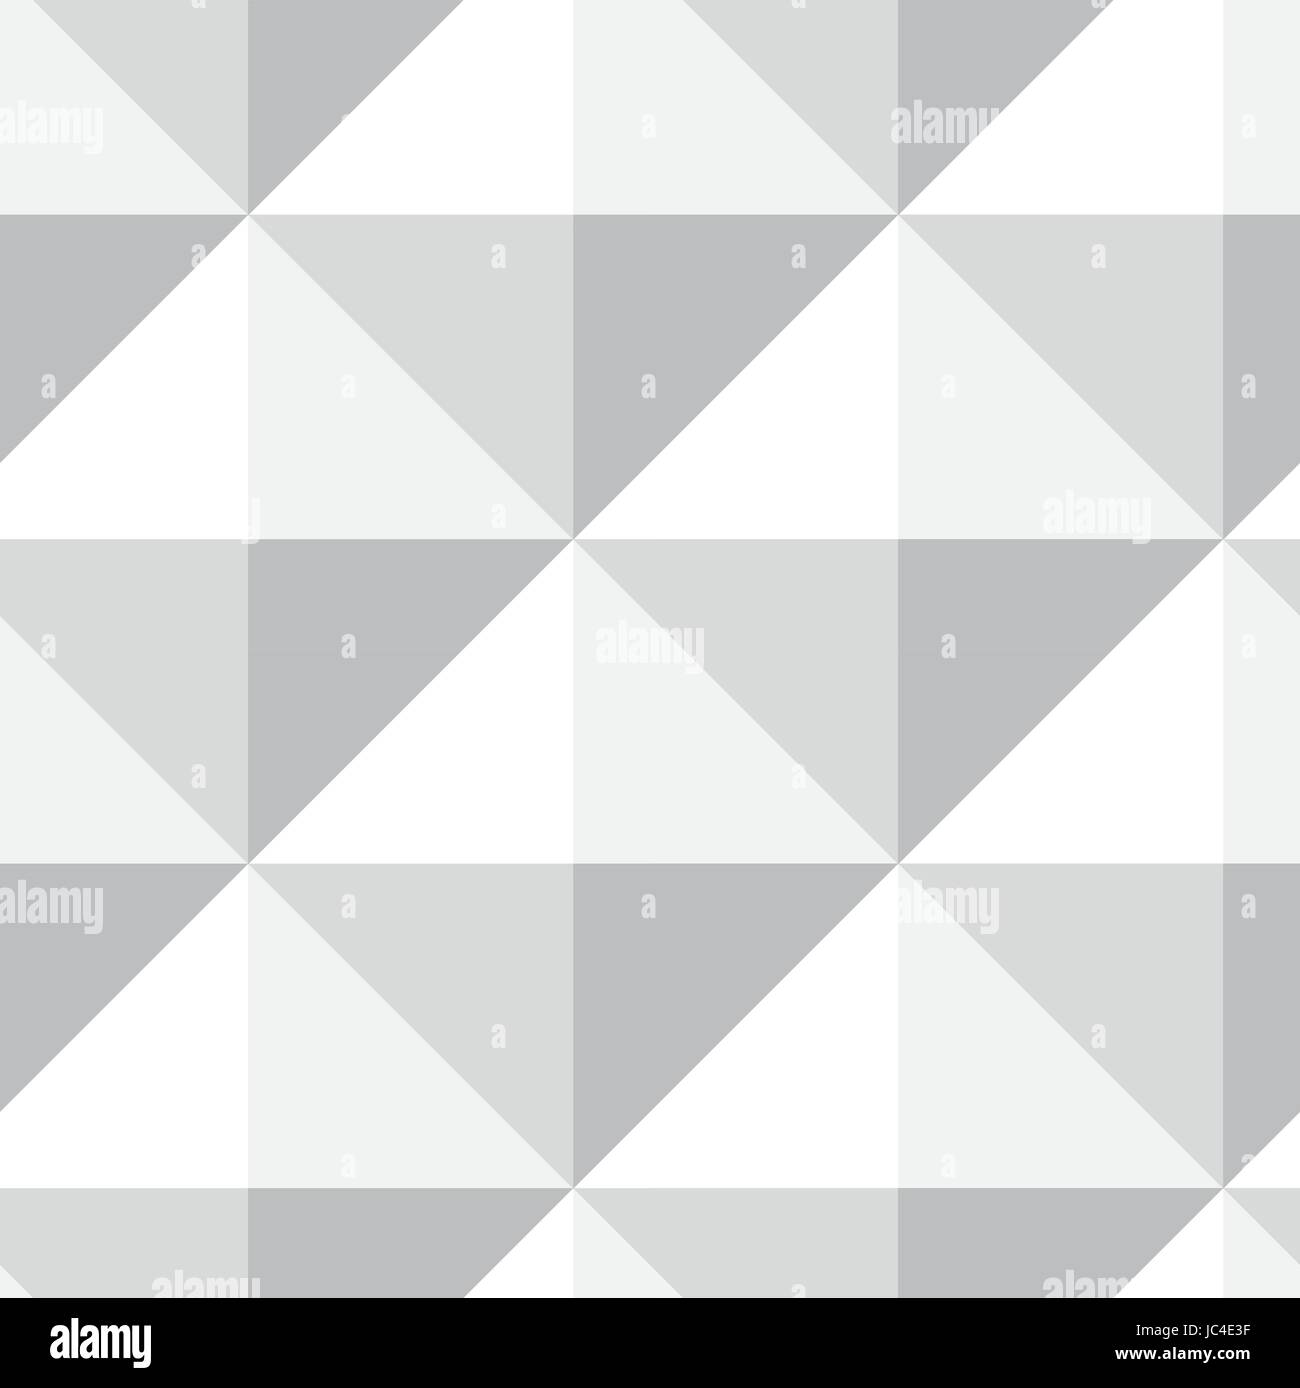 Million Dollar Pyramid Template Image collections - Template Design ...